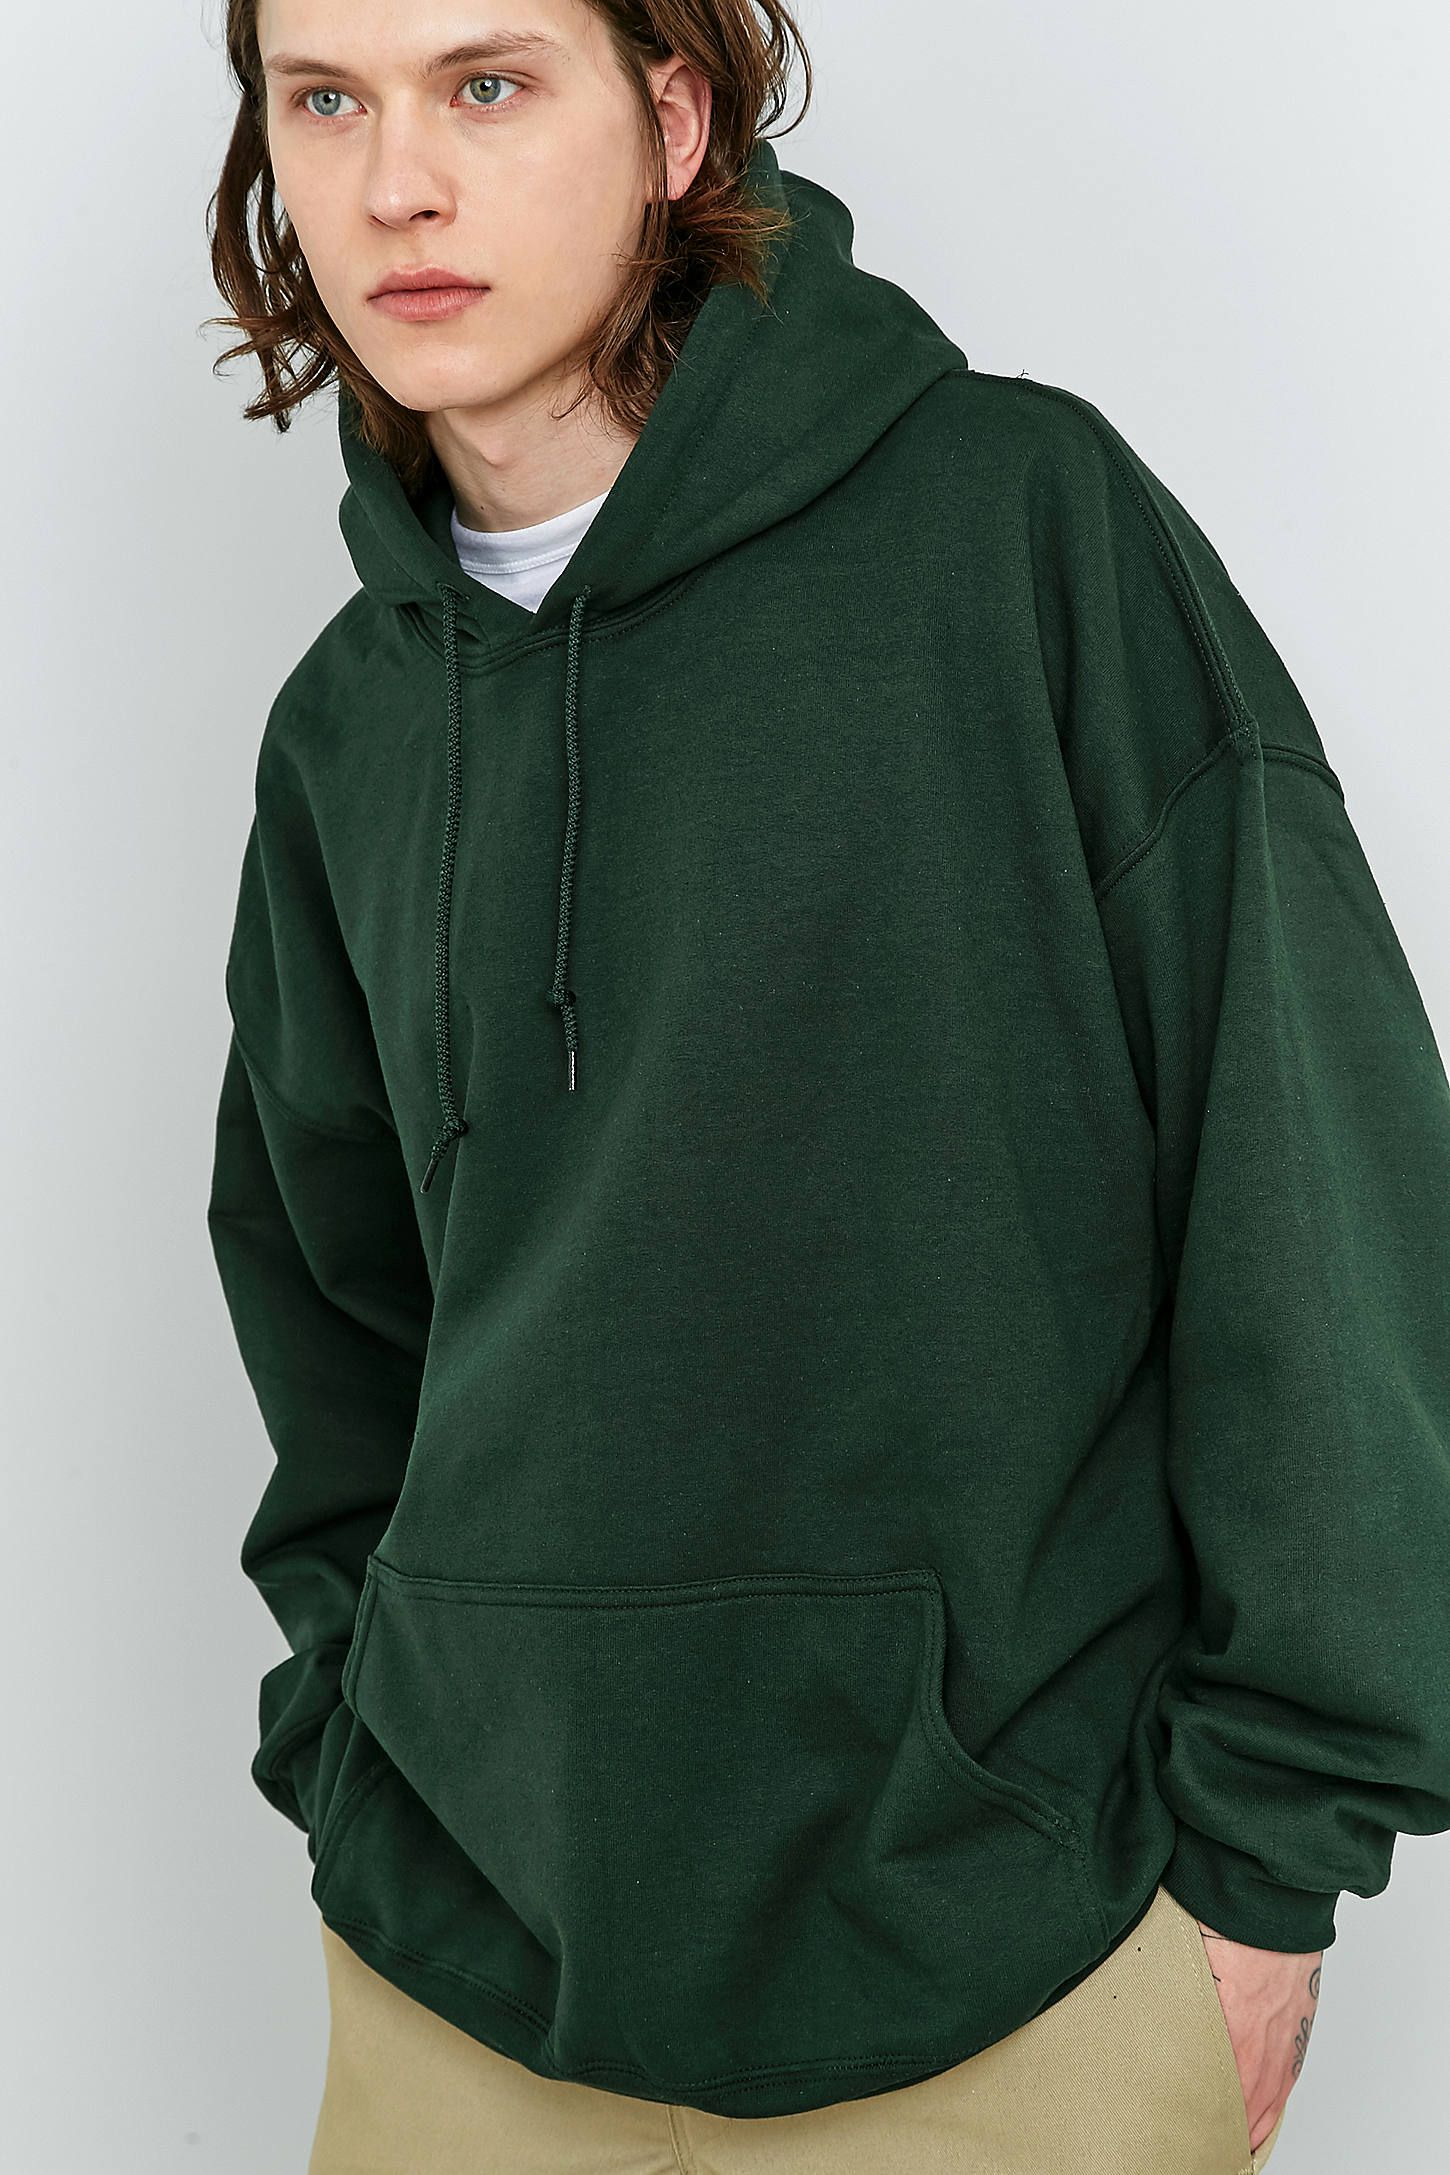 Slide View  1  UO Forest Green Oversized Hoodie  d4814dfa5dc0